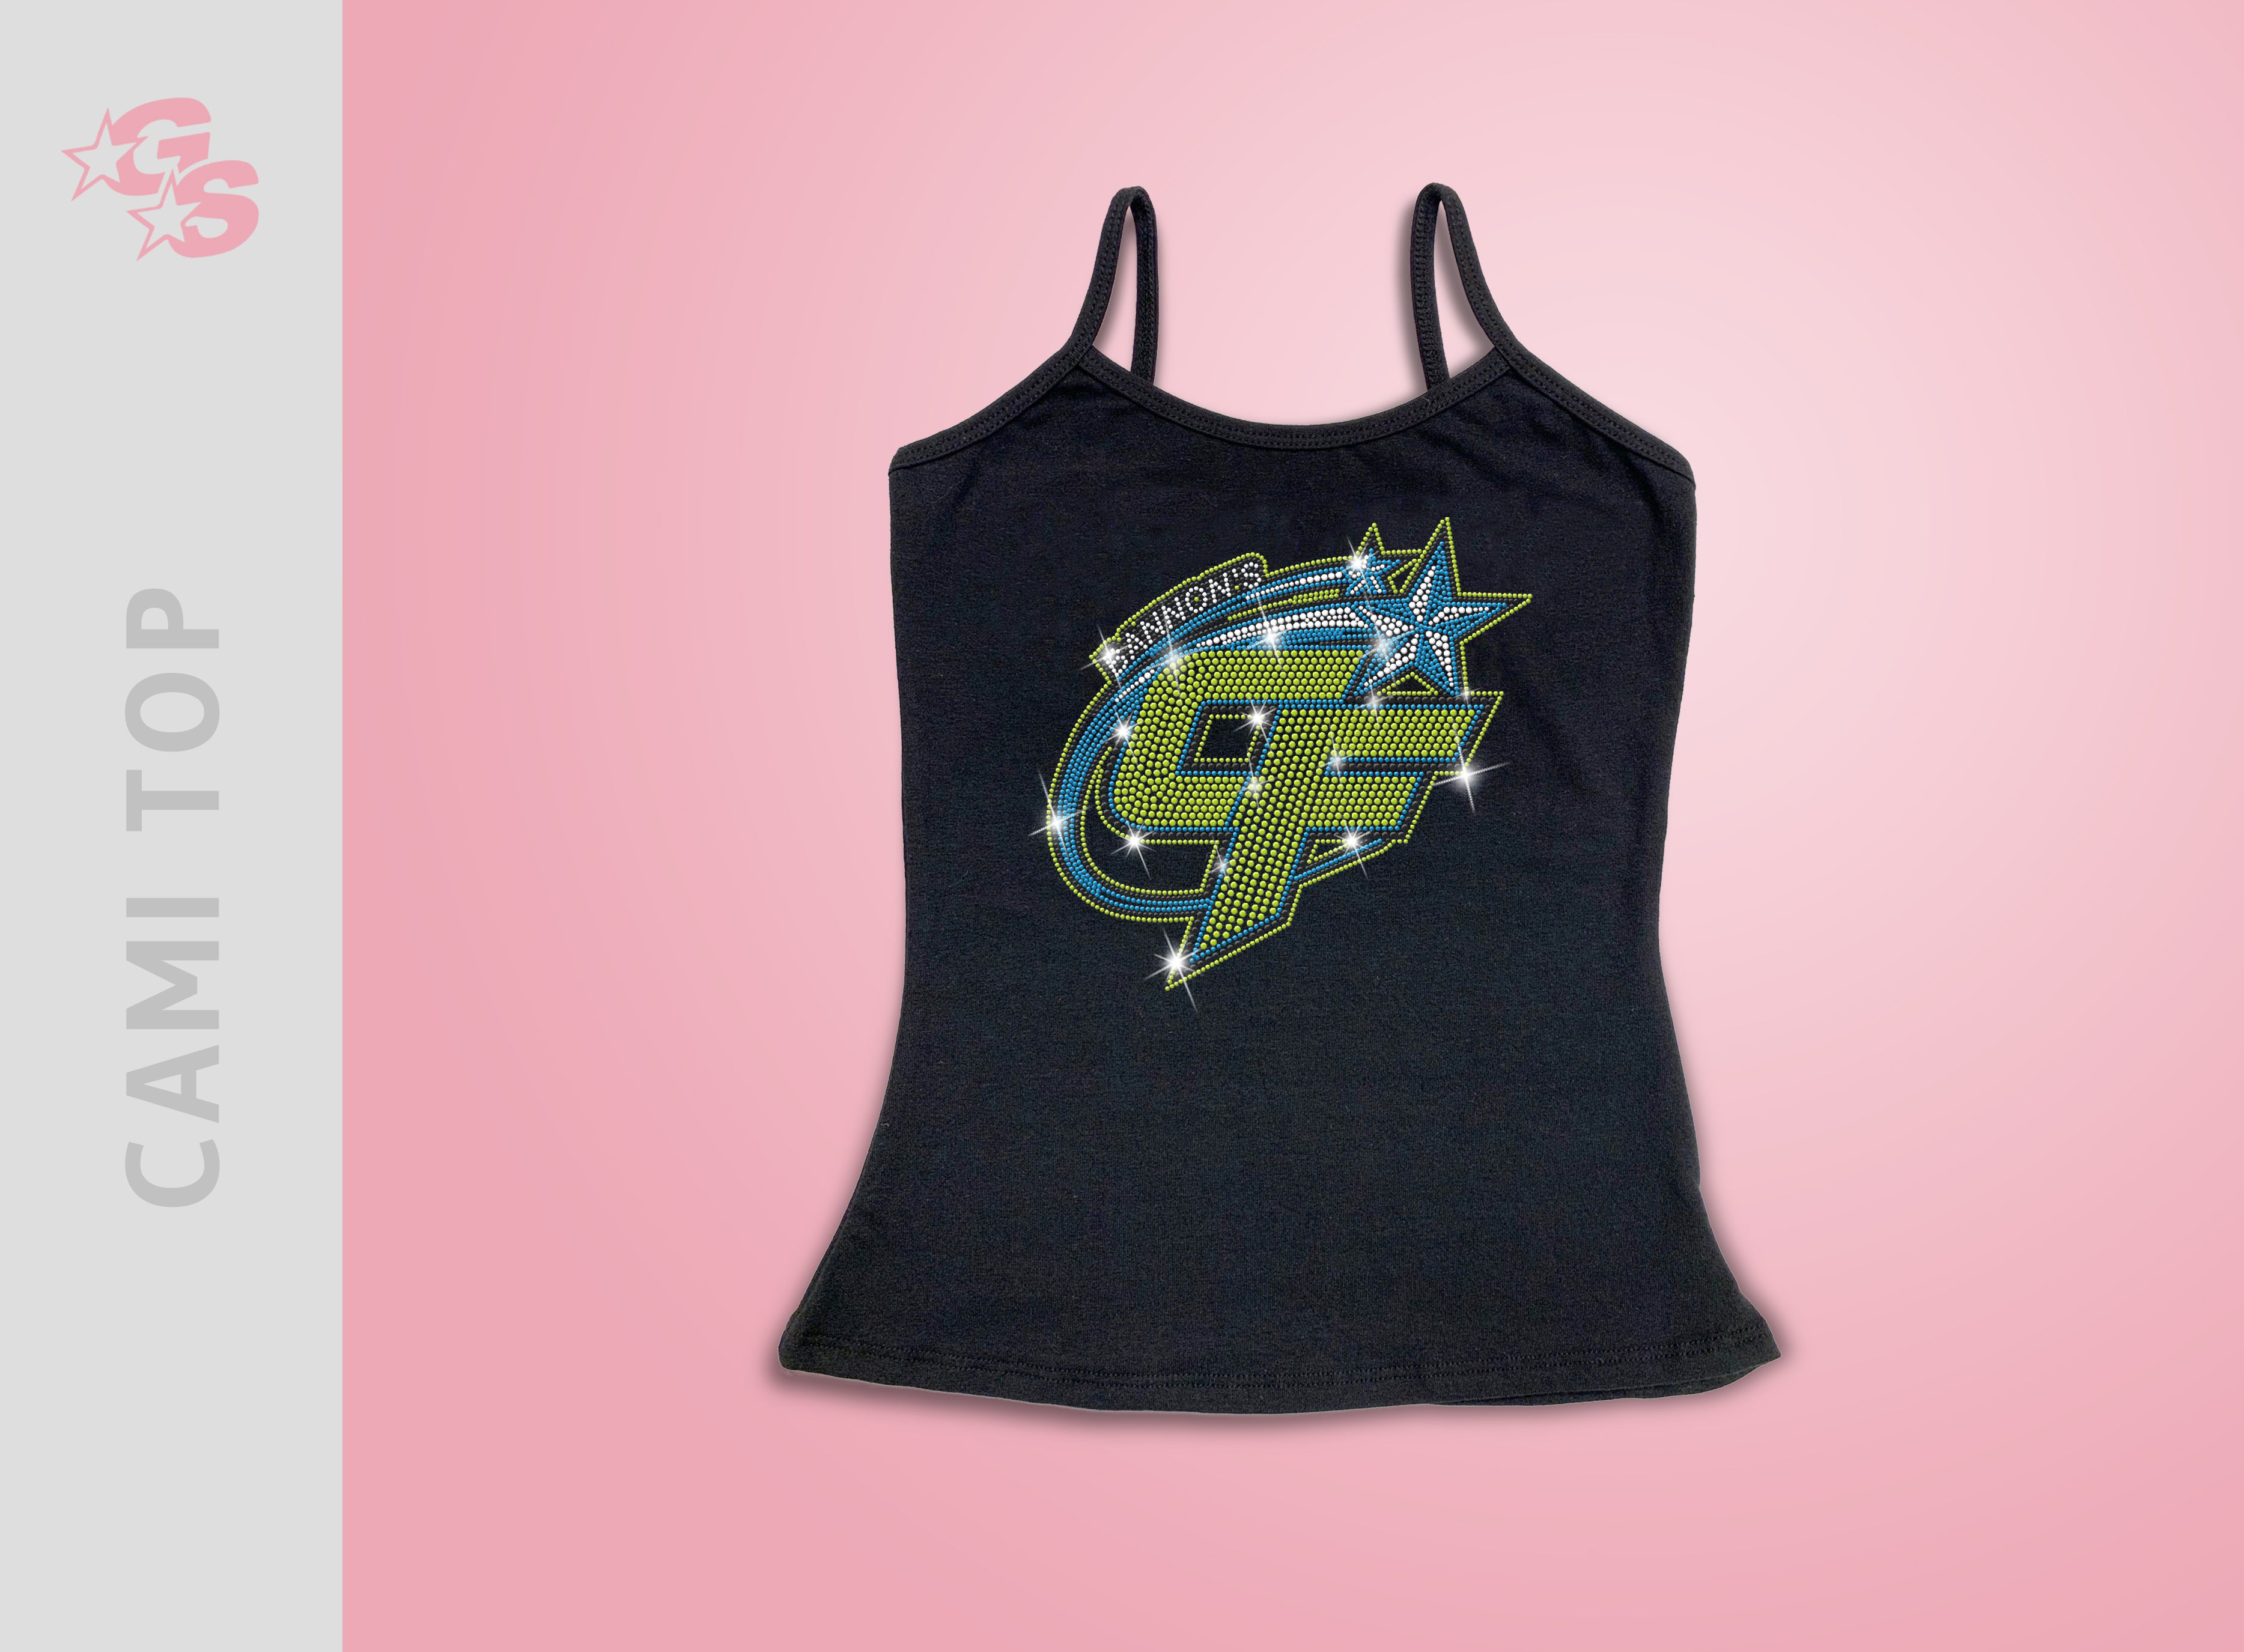 Bannon's Cheer Force Cami Top